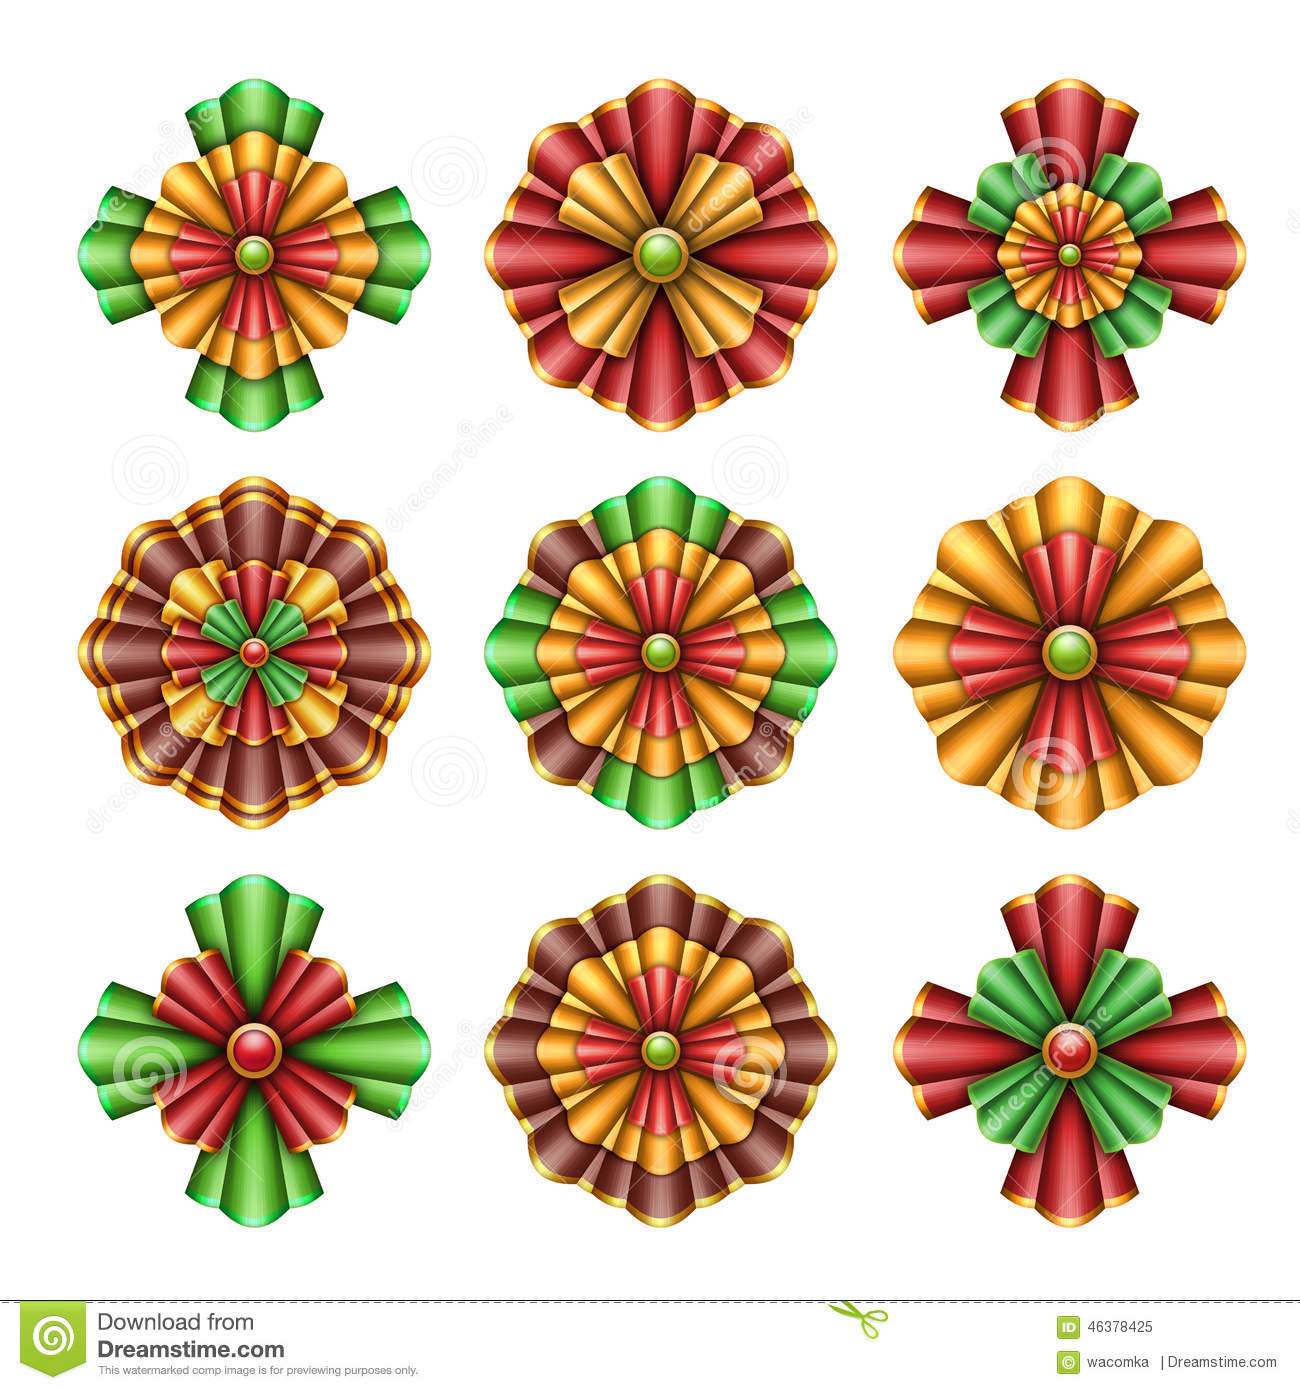 Christmas Ornaments Elements, Bows Clip Art, Abstract Flowers.